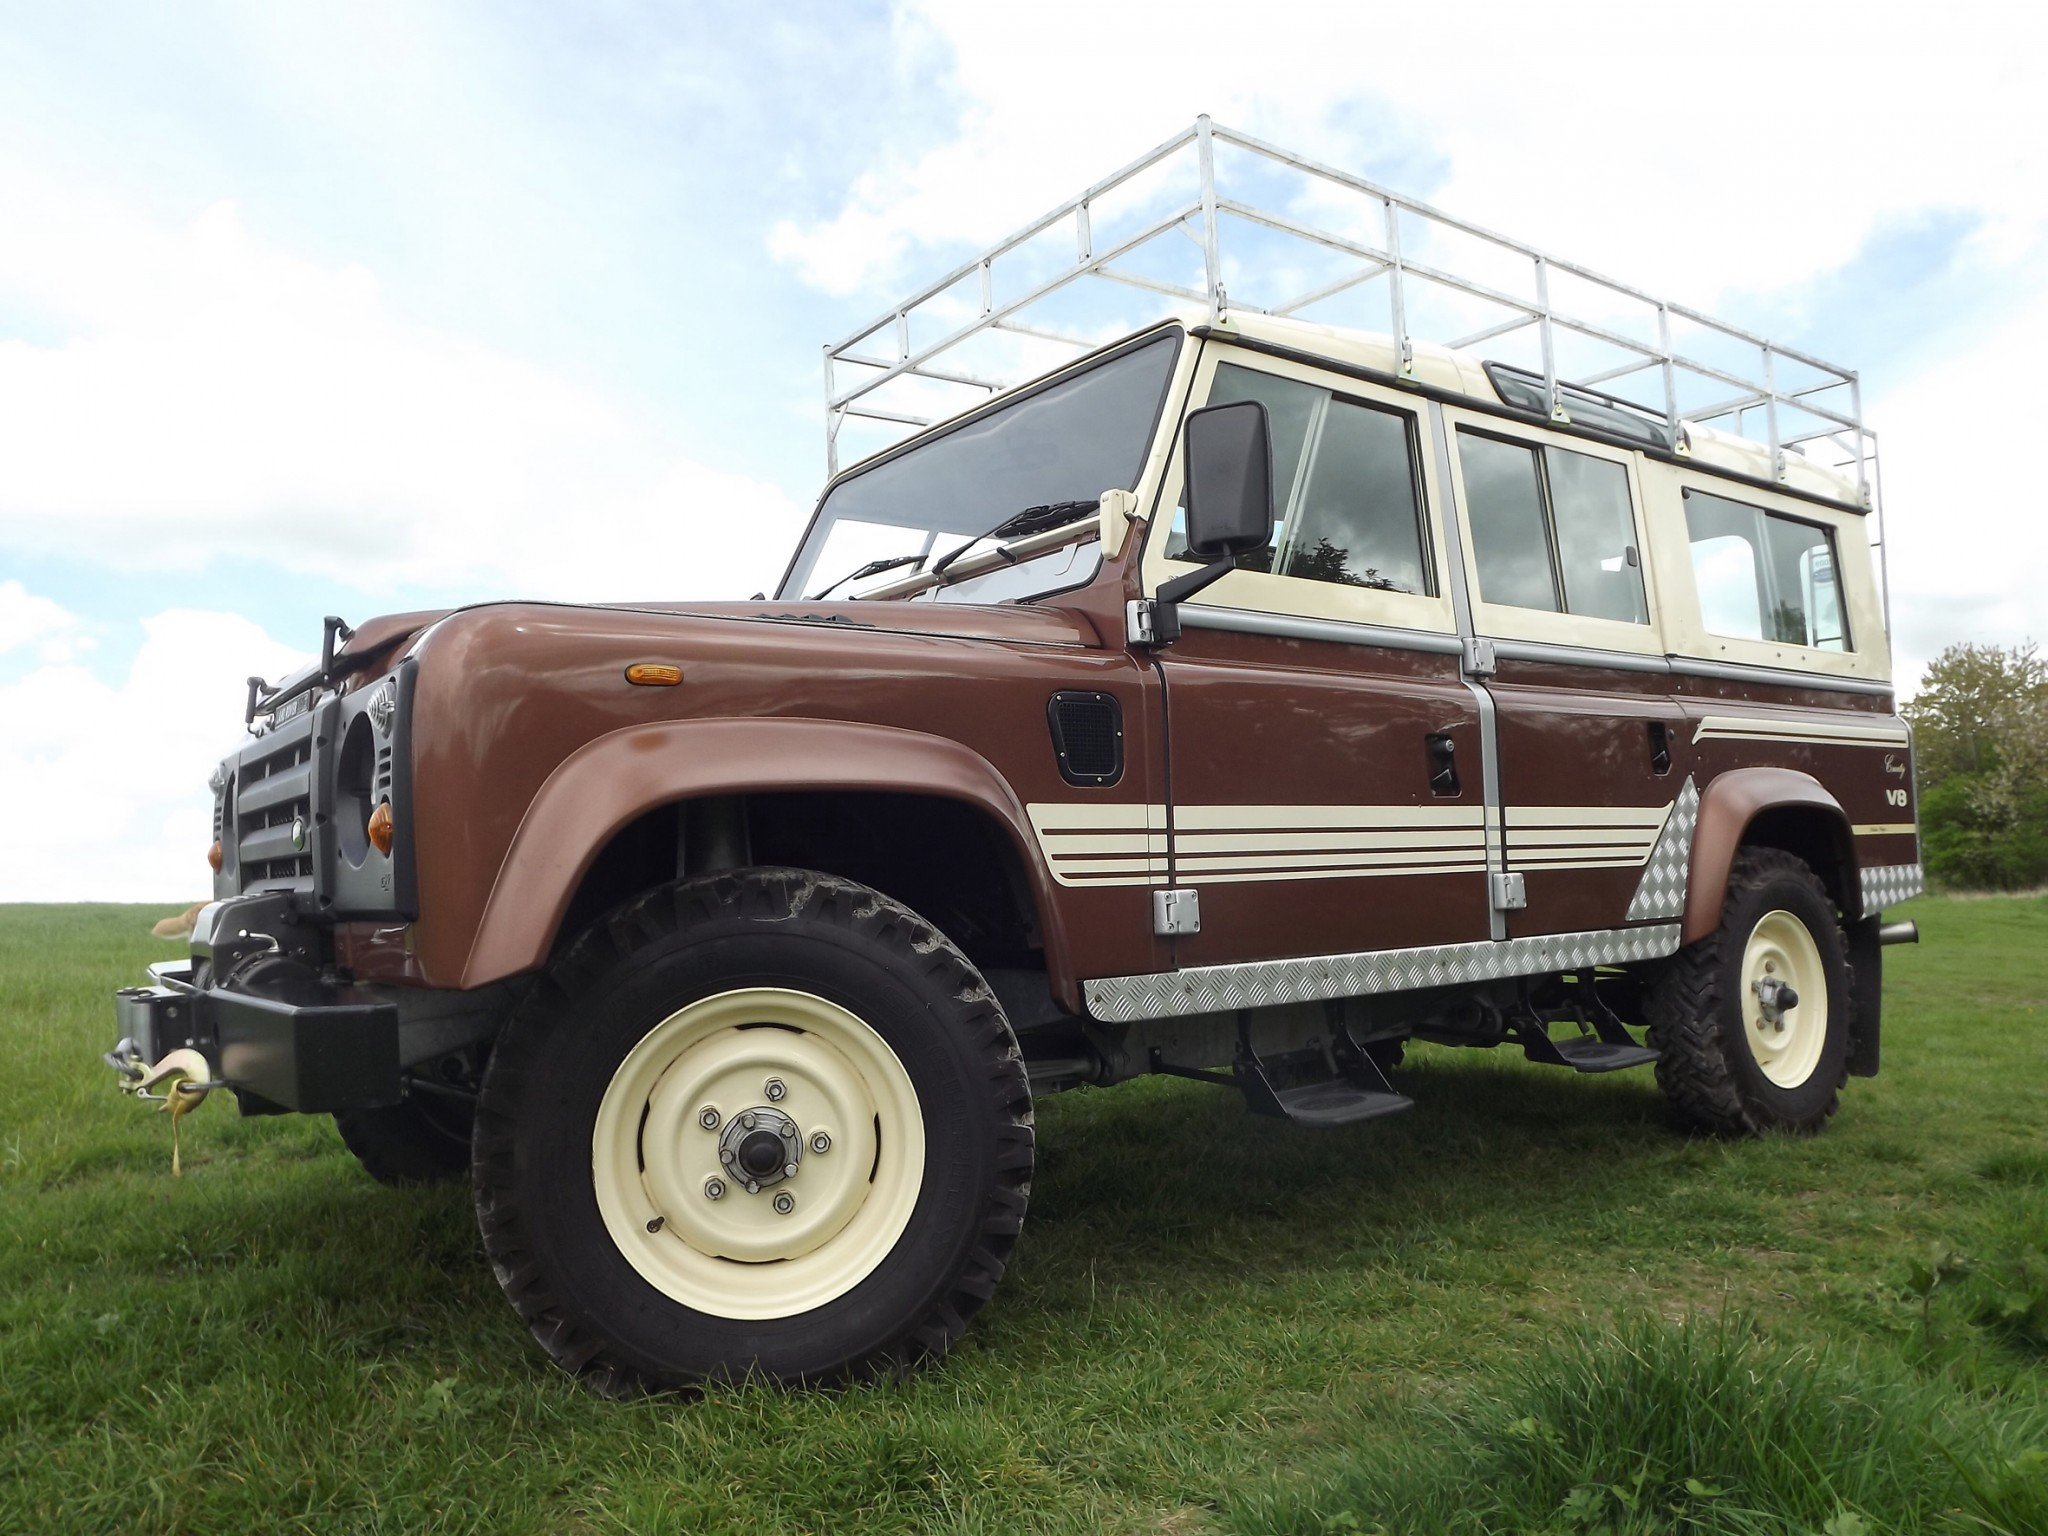 1984 land rover 110 country wagon to sell at auction practical motoring. Black Bedroom Furniture Sets. Home Design Ideas